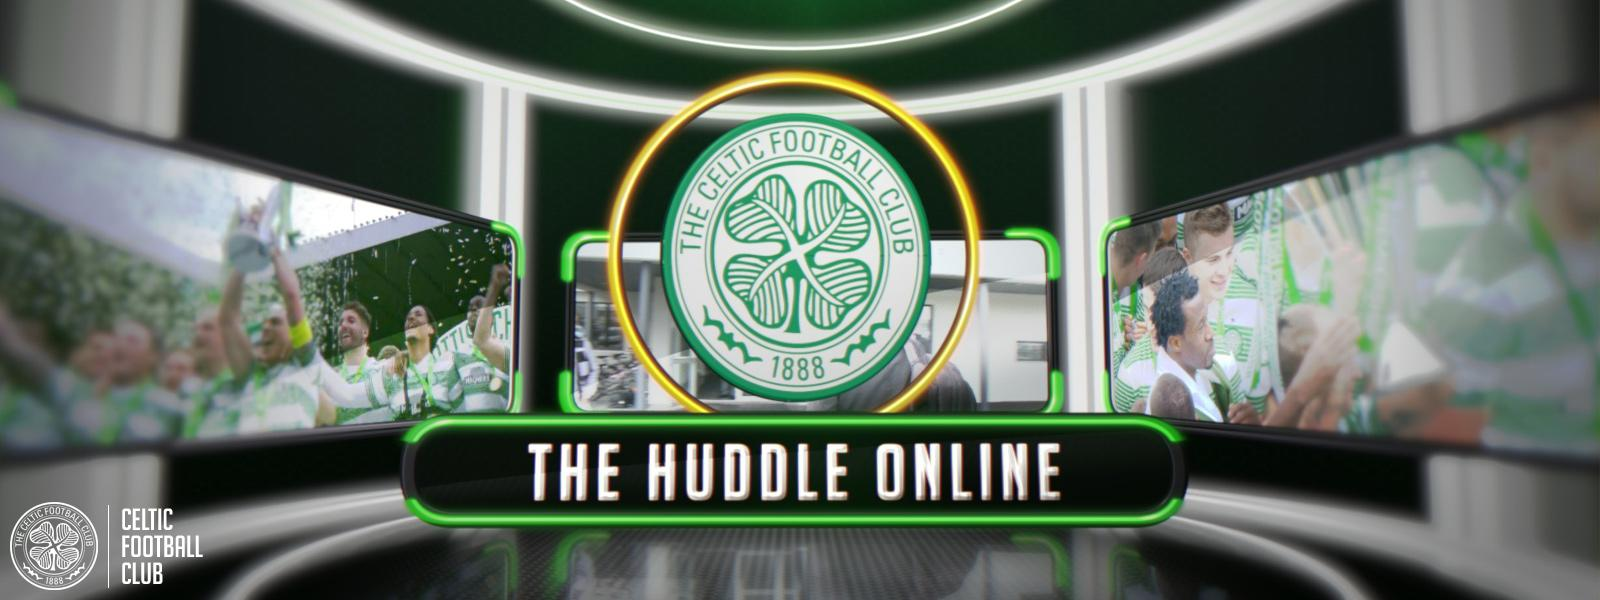 The Huddle Online